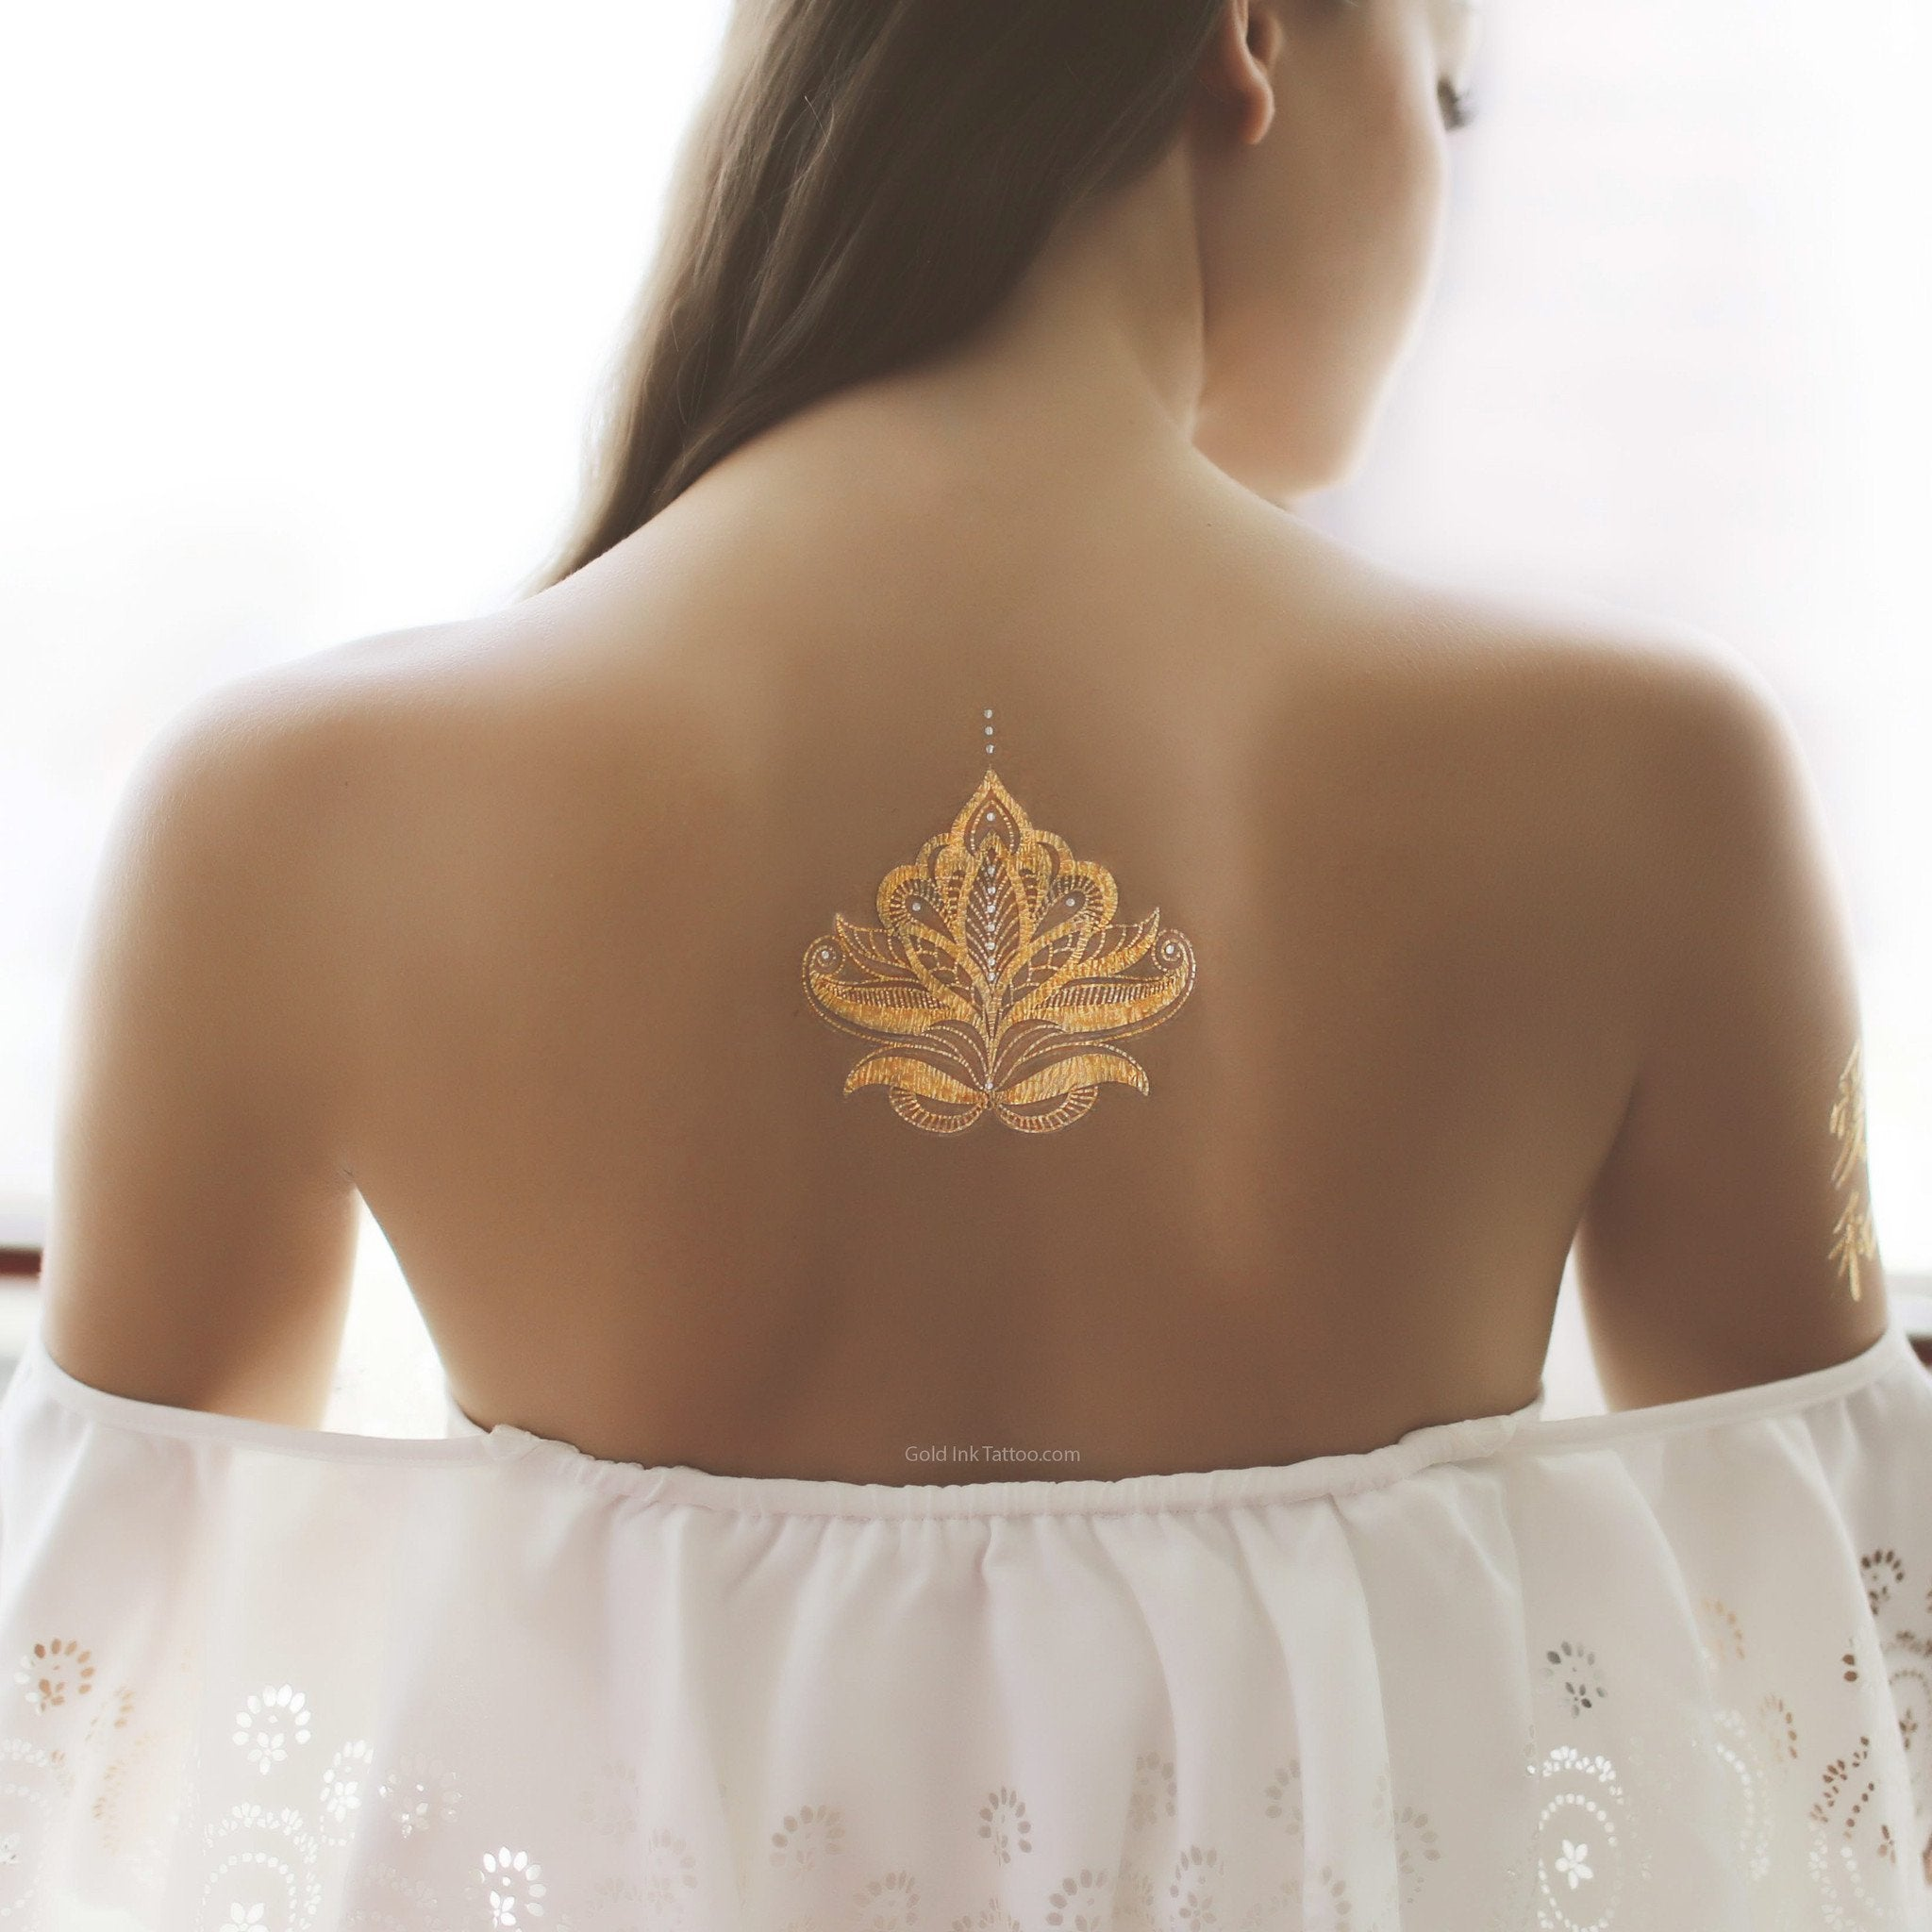 2 PACK Gold and Silver Henna Design